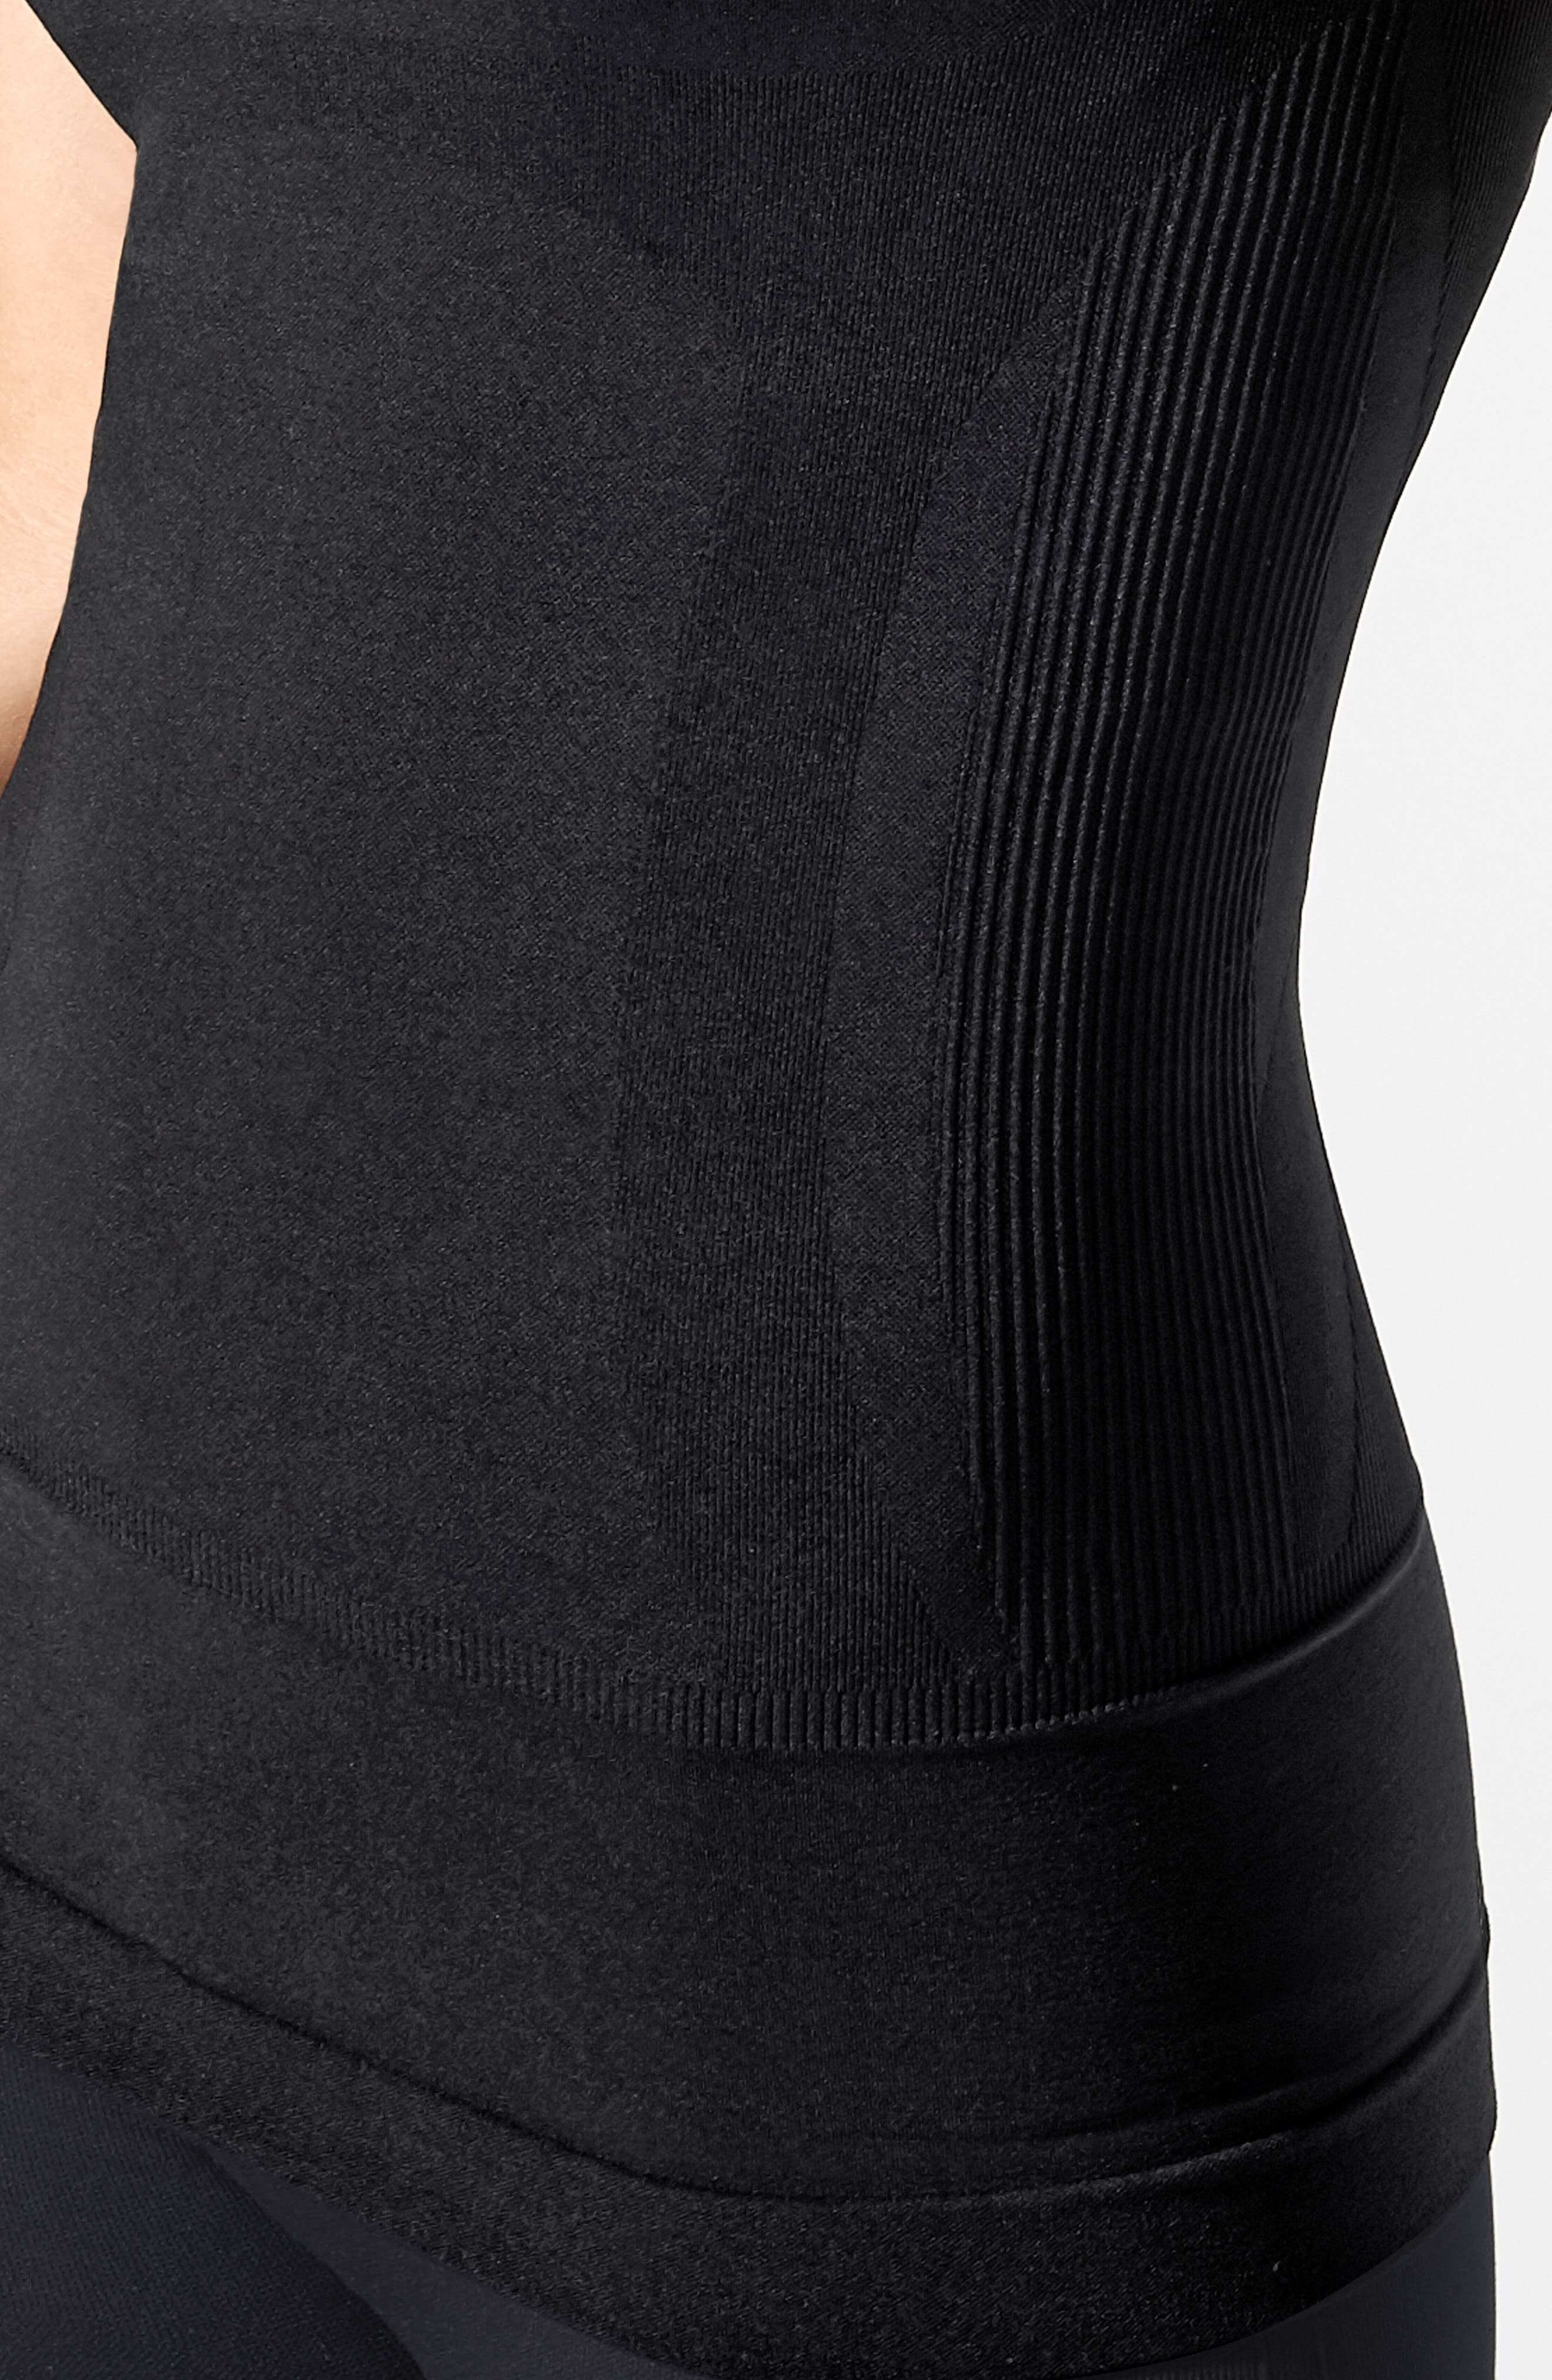 Everyday<sup>™</sup> Pull-Down Postpartum + Nursing Support Tank Top,                             Alternate thumbnail 5, color,                             DEEPEST BLACK